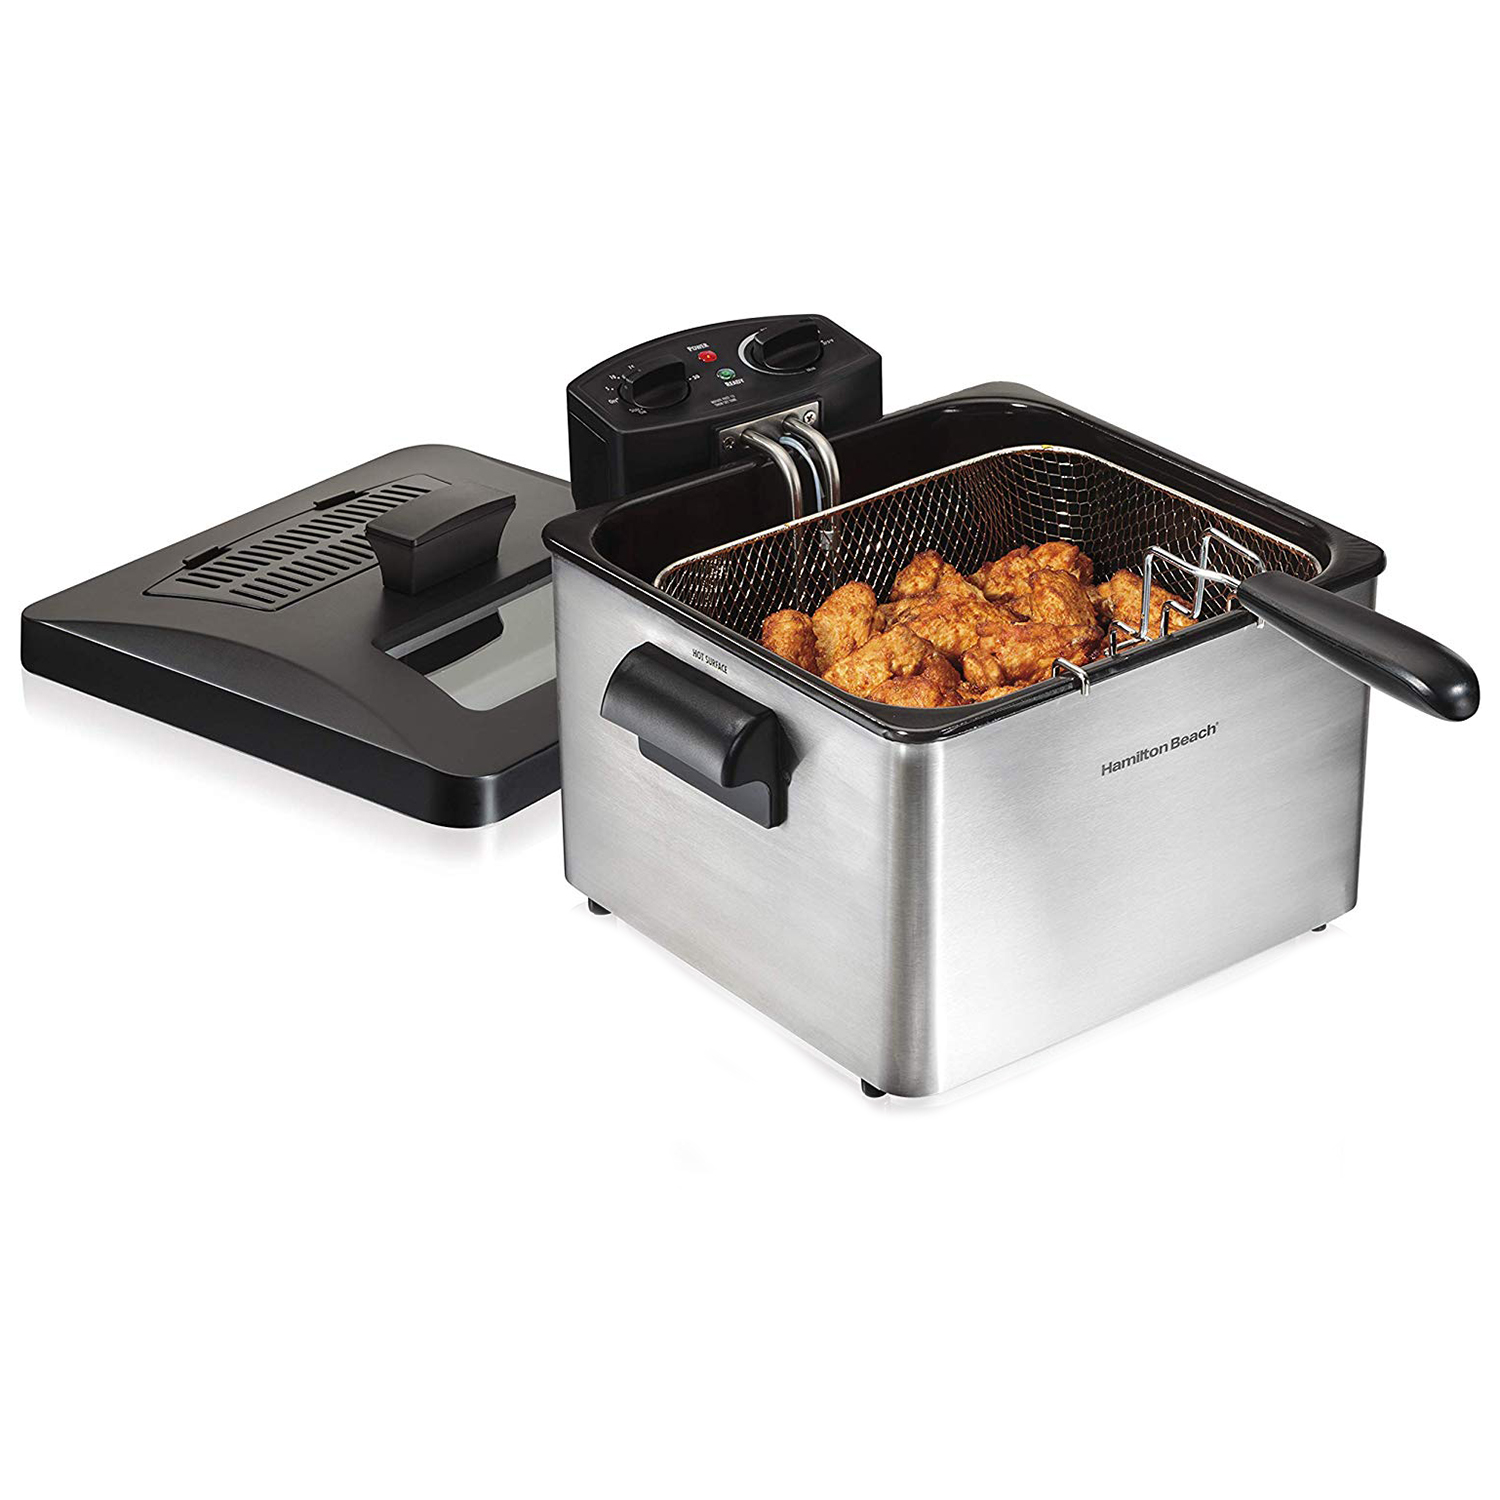 Hamilton Beach Triple Basket Electric Deep Fryer